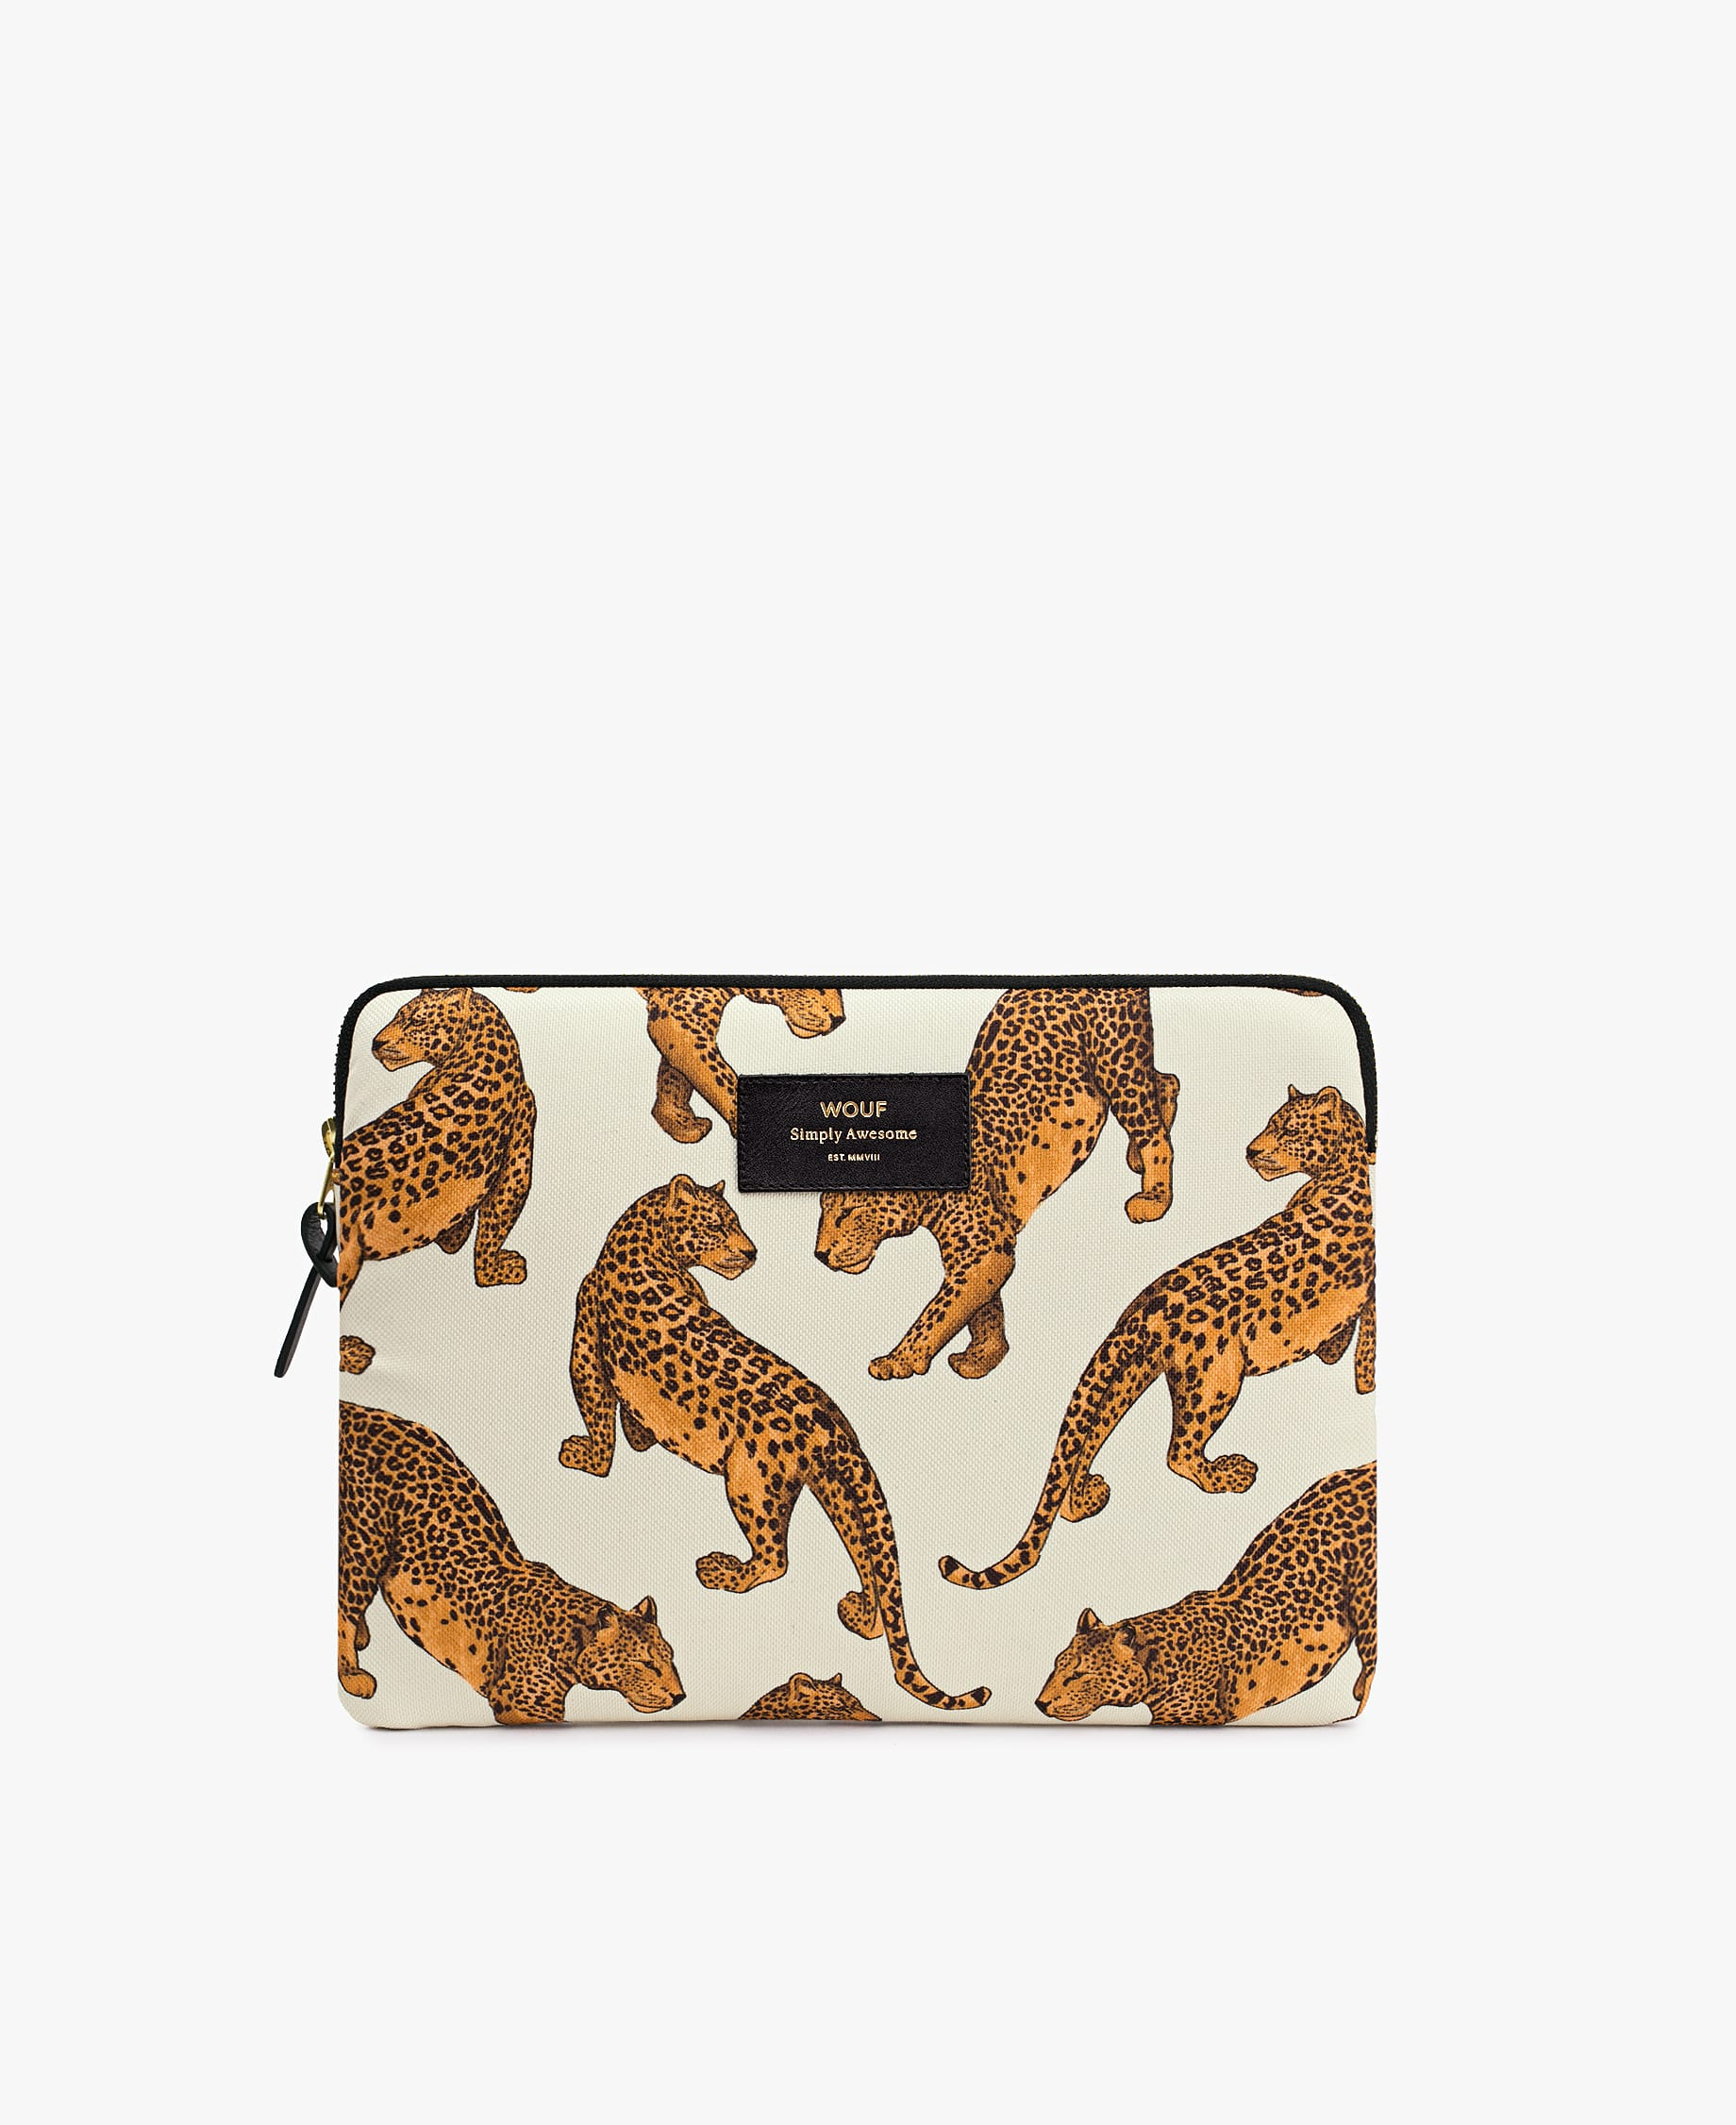 Wouf Leopard iPad Case